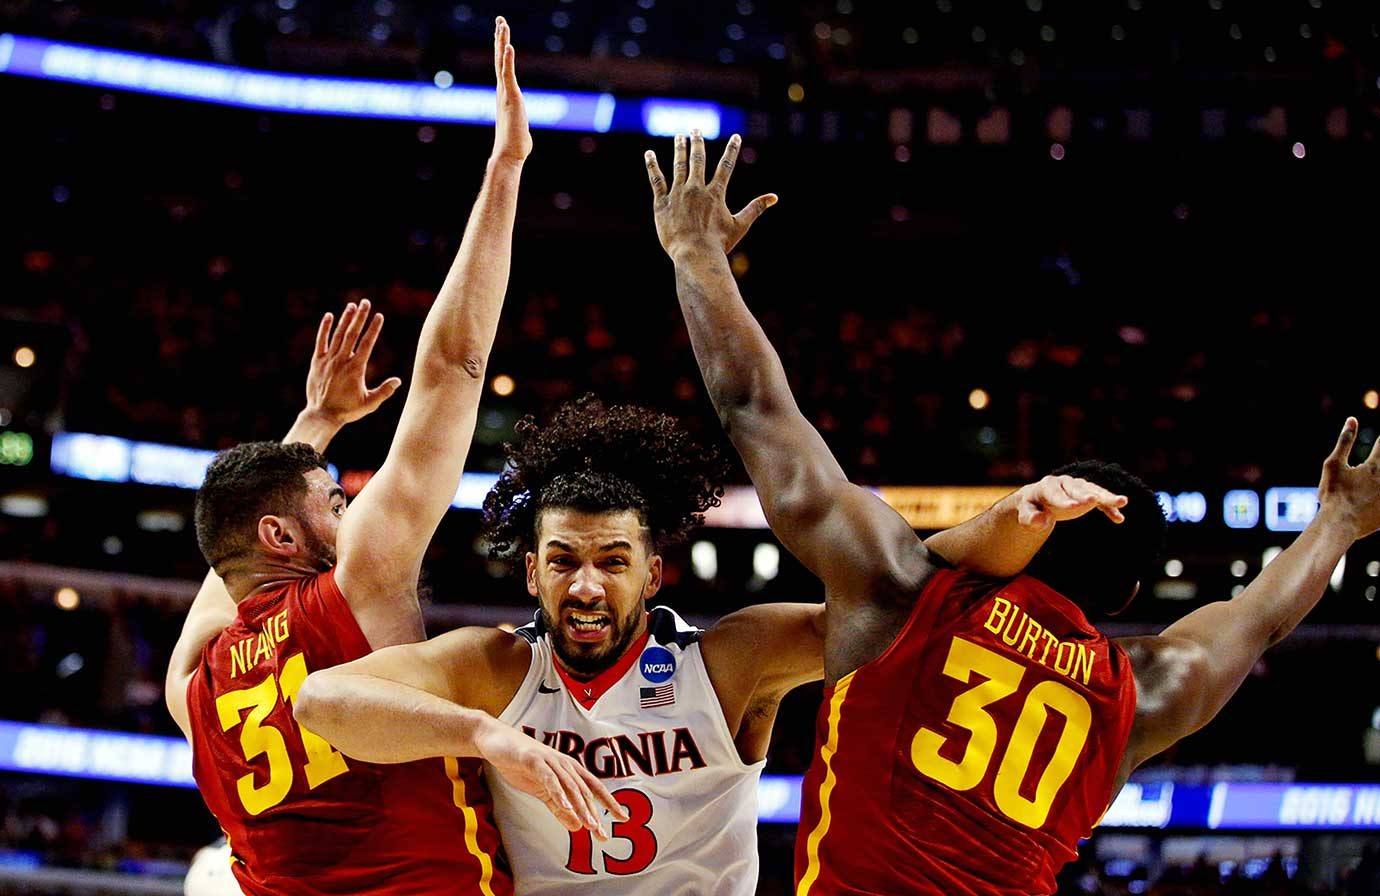 Anthony Gill and the Virginia Cavaliers bulldozed their way past Georges Niang, Deonte Burton and Iowa State, 84-71.